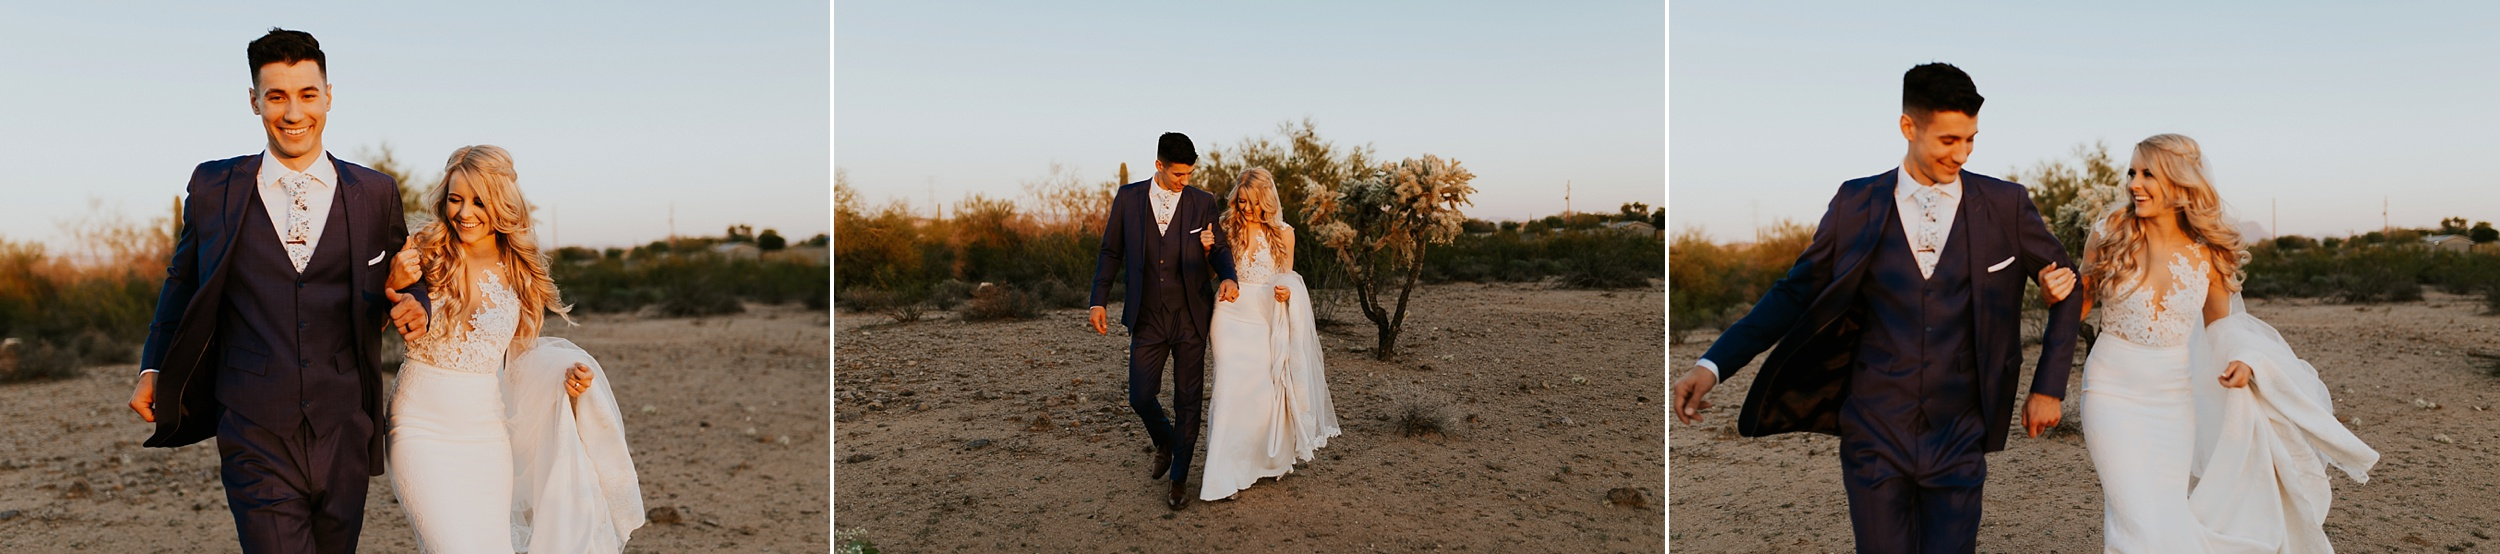 Meg+Bubba_Wedding_Bride+Groom_Portraits_Arizona-233.jpg